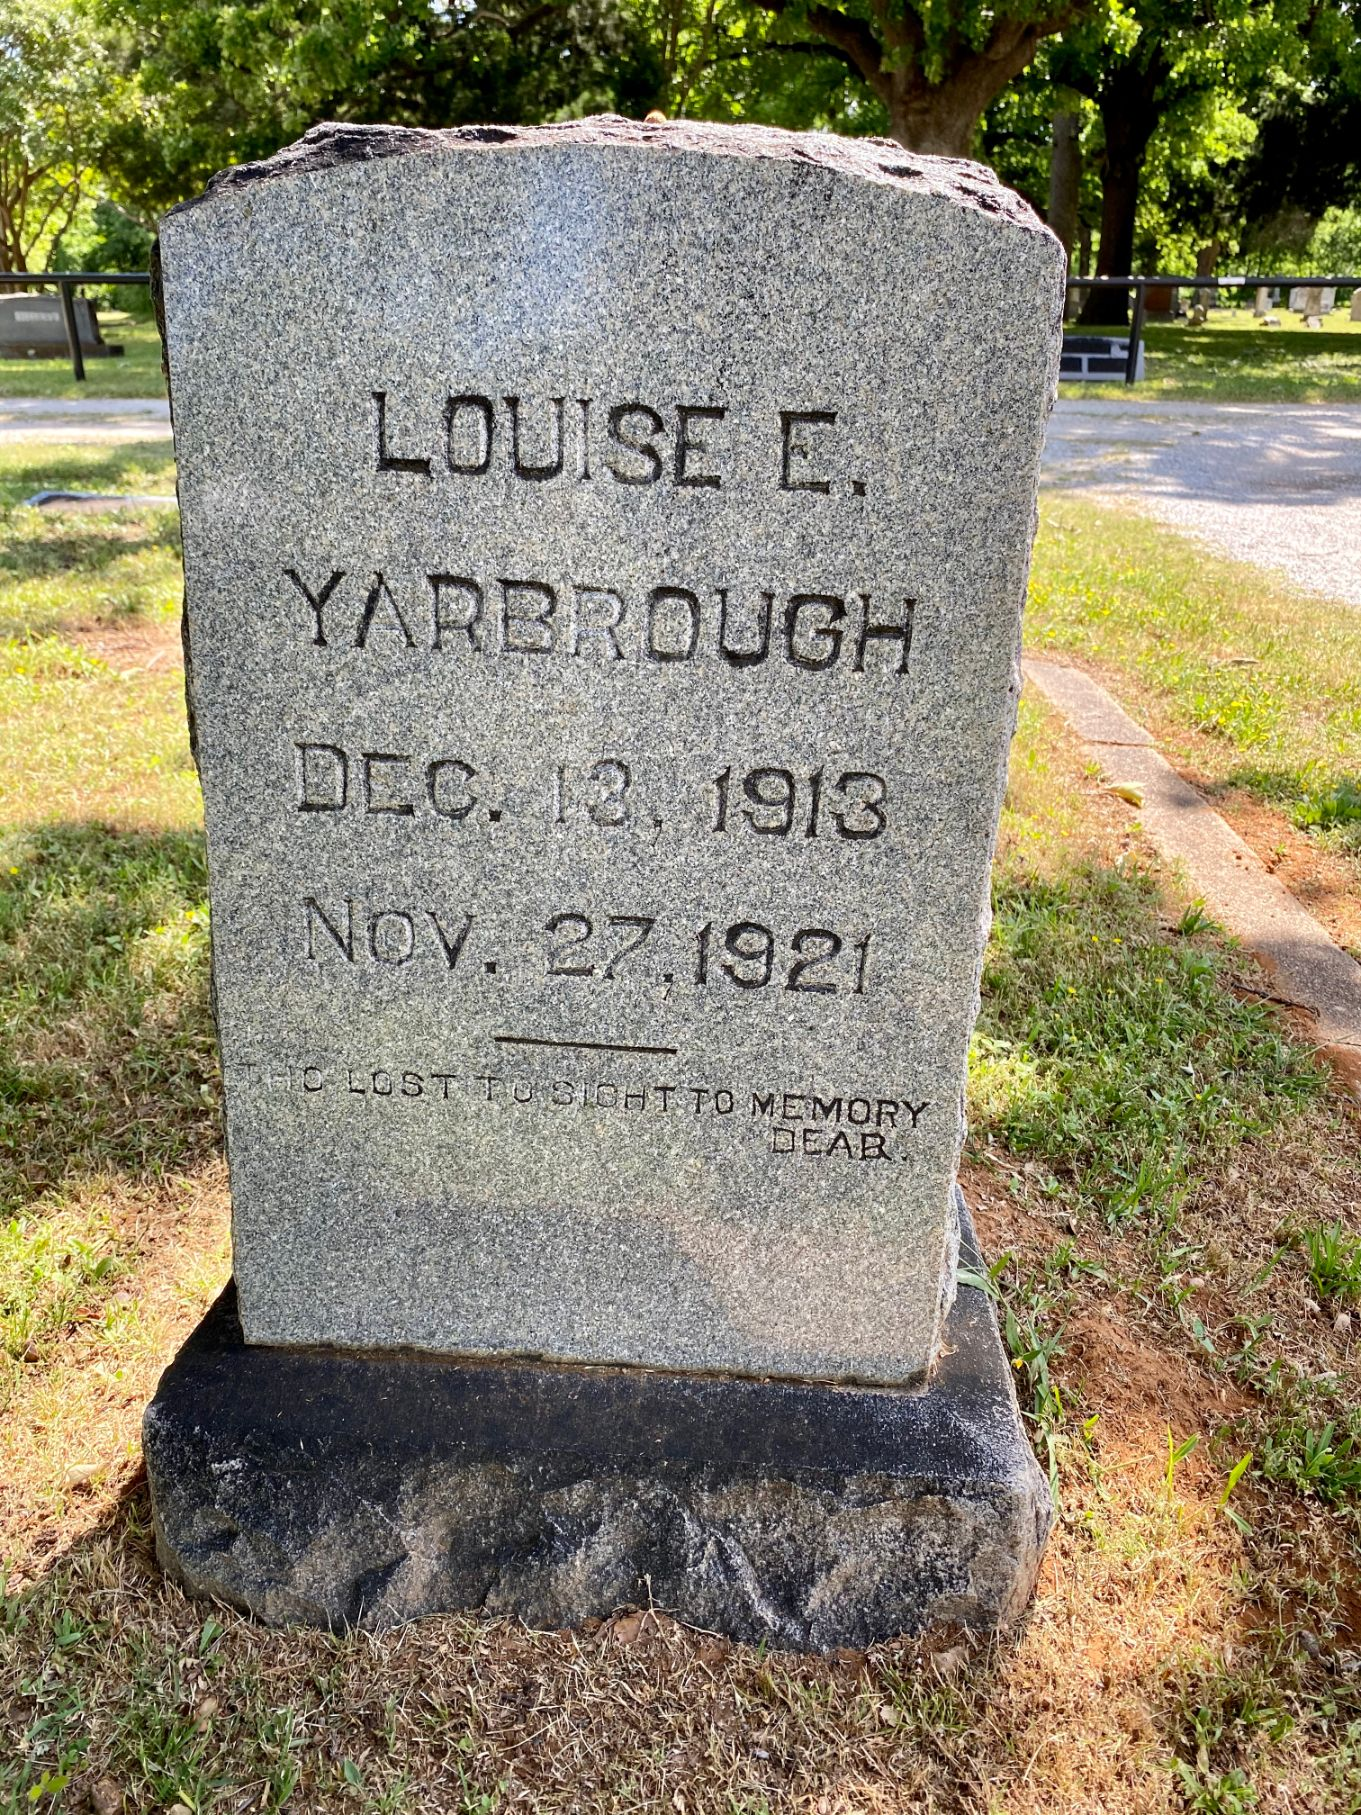 Yarbrough